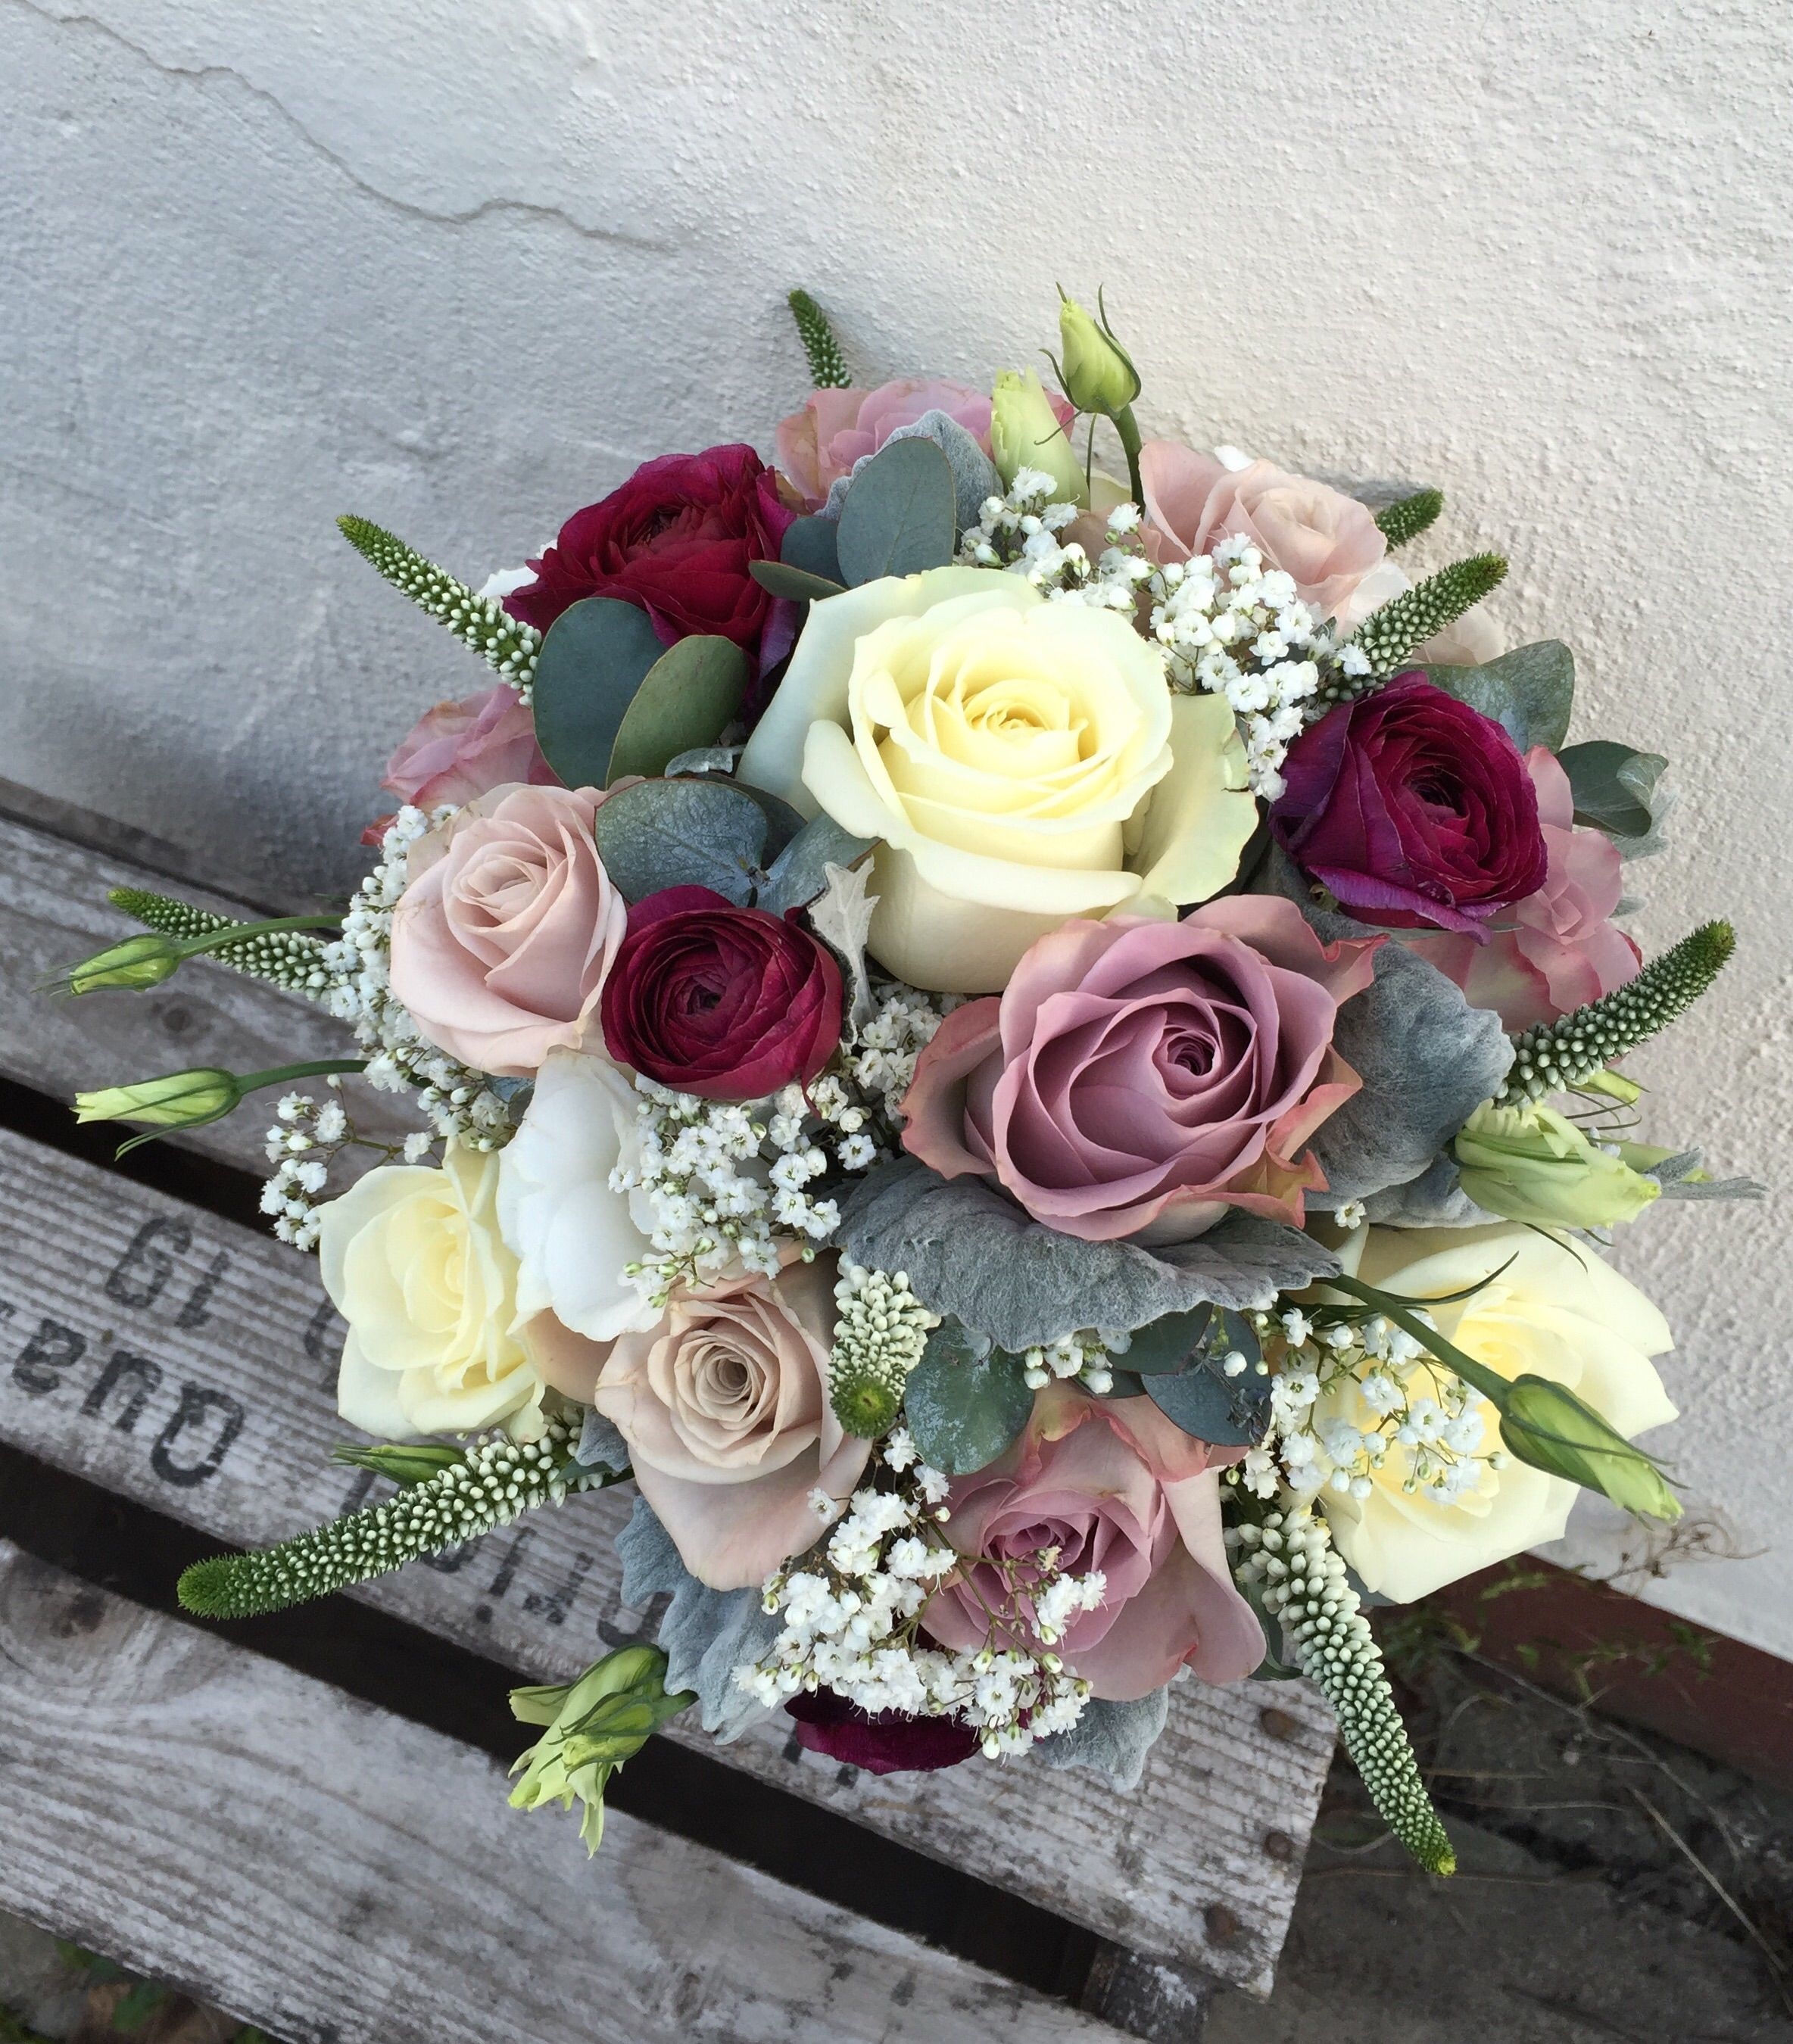 Medium Of Winter Wedding Flowers